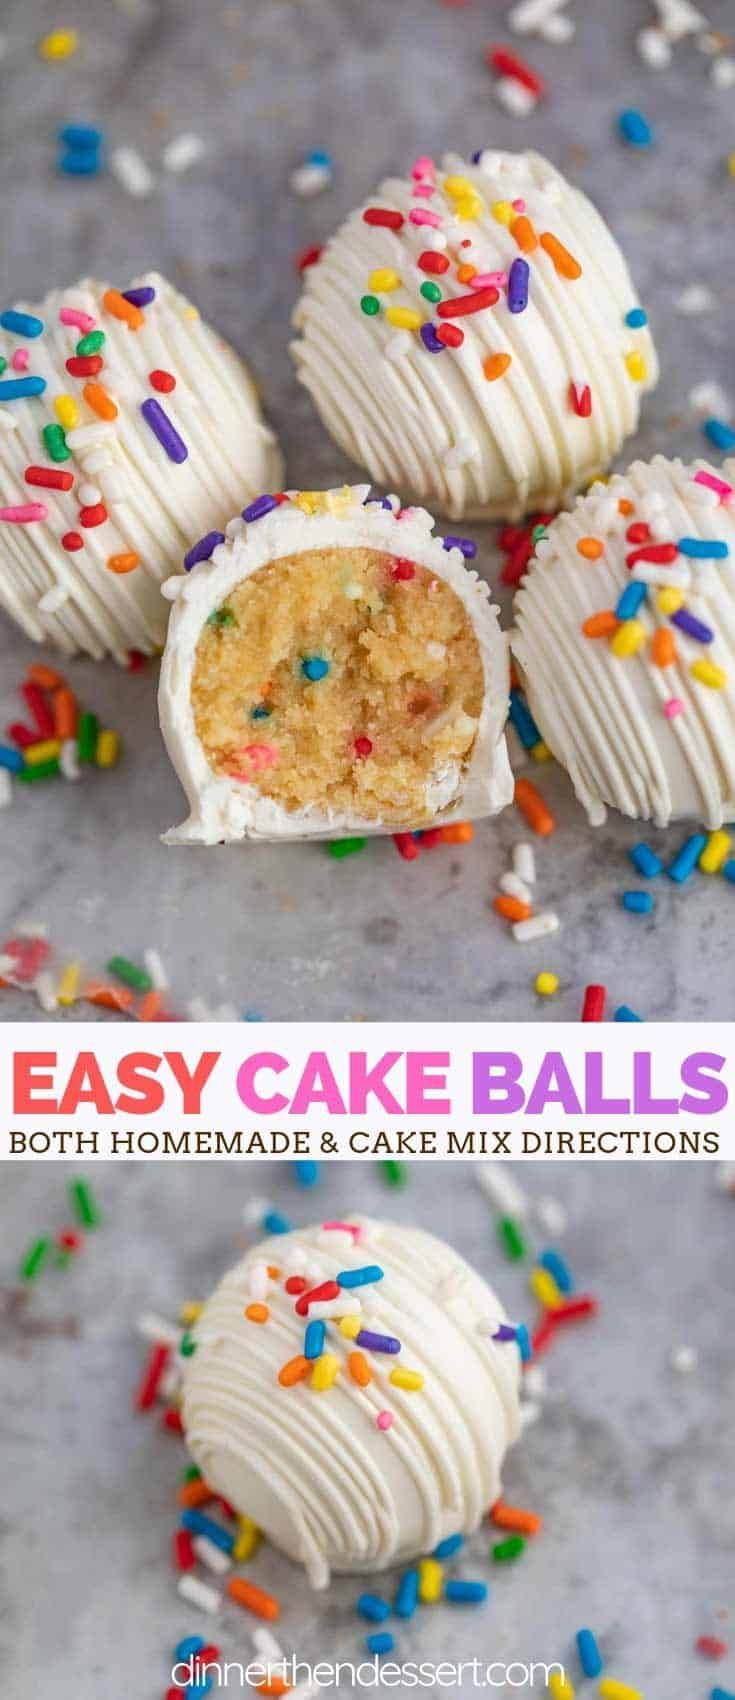 Cake Balls (Cake Truffles) are the PERFECT dessert, made with sweet yellow cake mixed with buttercream frosting and sprinkles then coated in melted white chocolate and topped with extra sprinkles! Balls (Cake Truffles) are the PERFECT dessert, made with sweet yellow cake mixed with buttercream frosting and sprinkles then coated in melted white chocolate and topped with extra sprinkles!